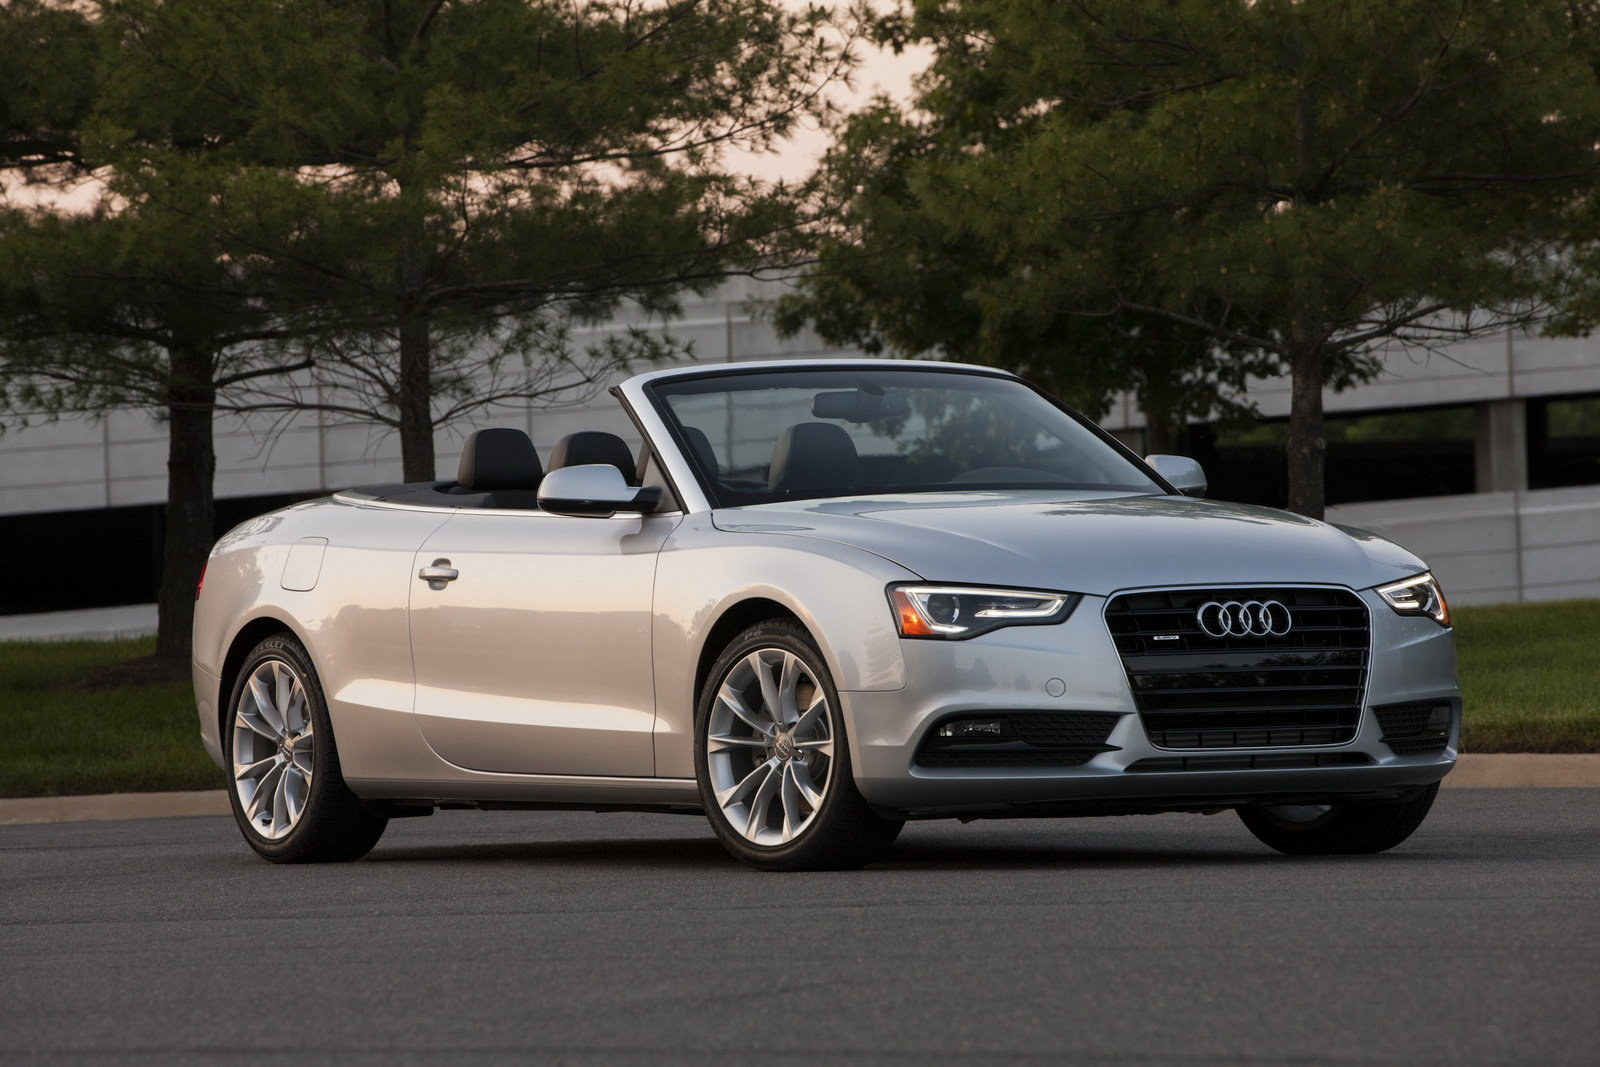 2014 audi a5 convertible picture 511597 car review top speed. Cars Review. Best American Auto & Cars Review